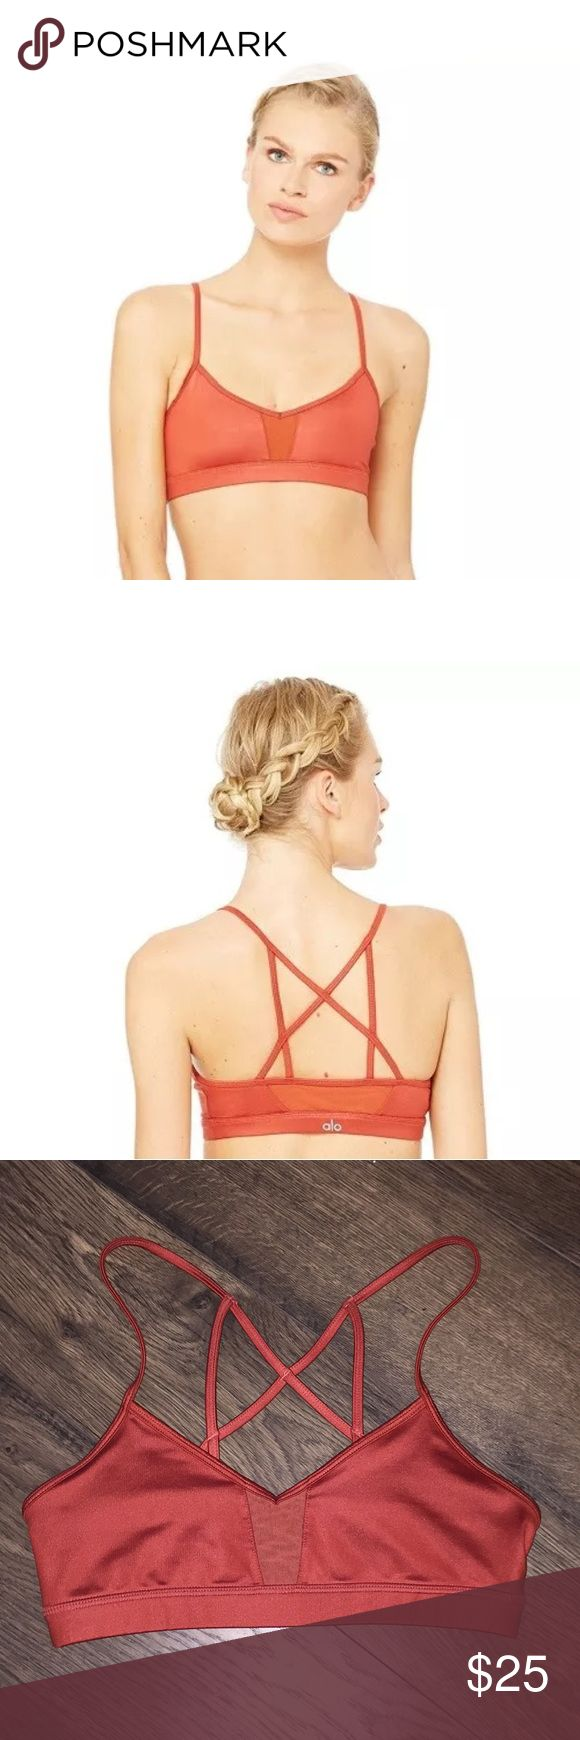 Alo Yoga Sunbaked Glossy Goddess Bra S Worn, but appearance is like new. Glossy finish. Cut holes in lining to allow for pads (see pics). Not visible while wearing. Warm burnt color looks nice with black, grey, and patterns. ALO Yoga Intimates & Sleepwear Bras